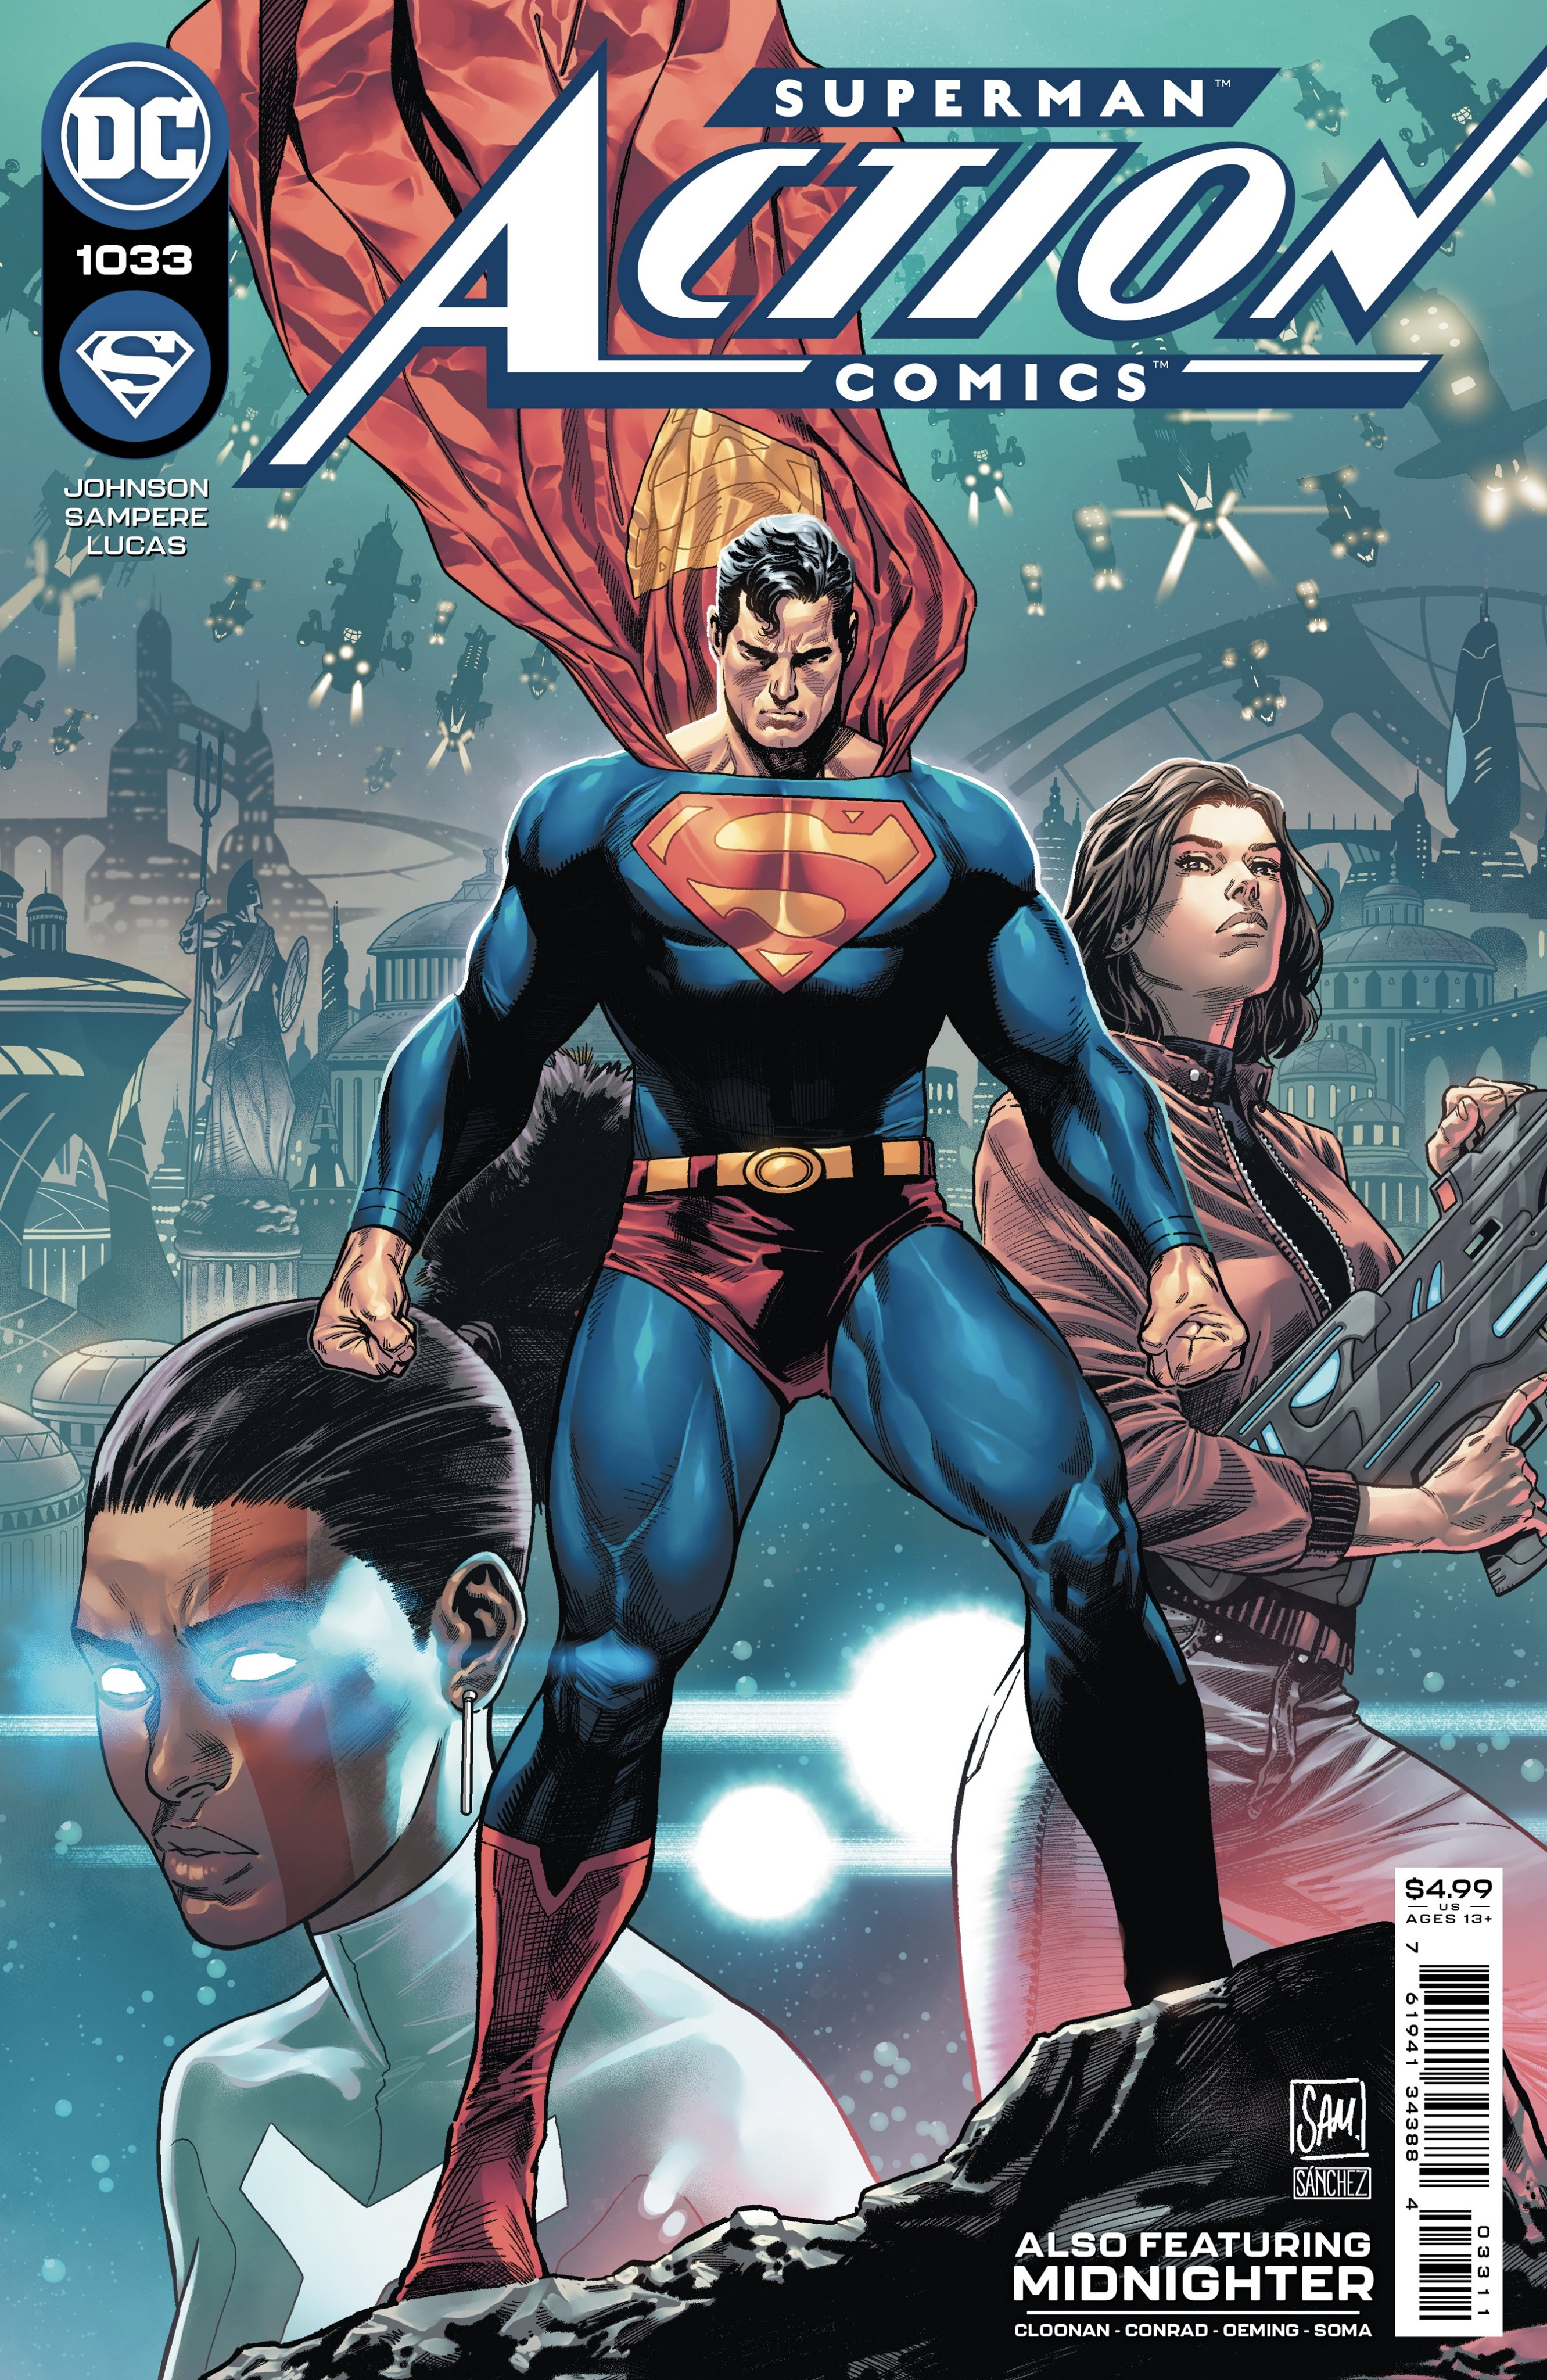 Action Comics Issue 1033 Main Cover